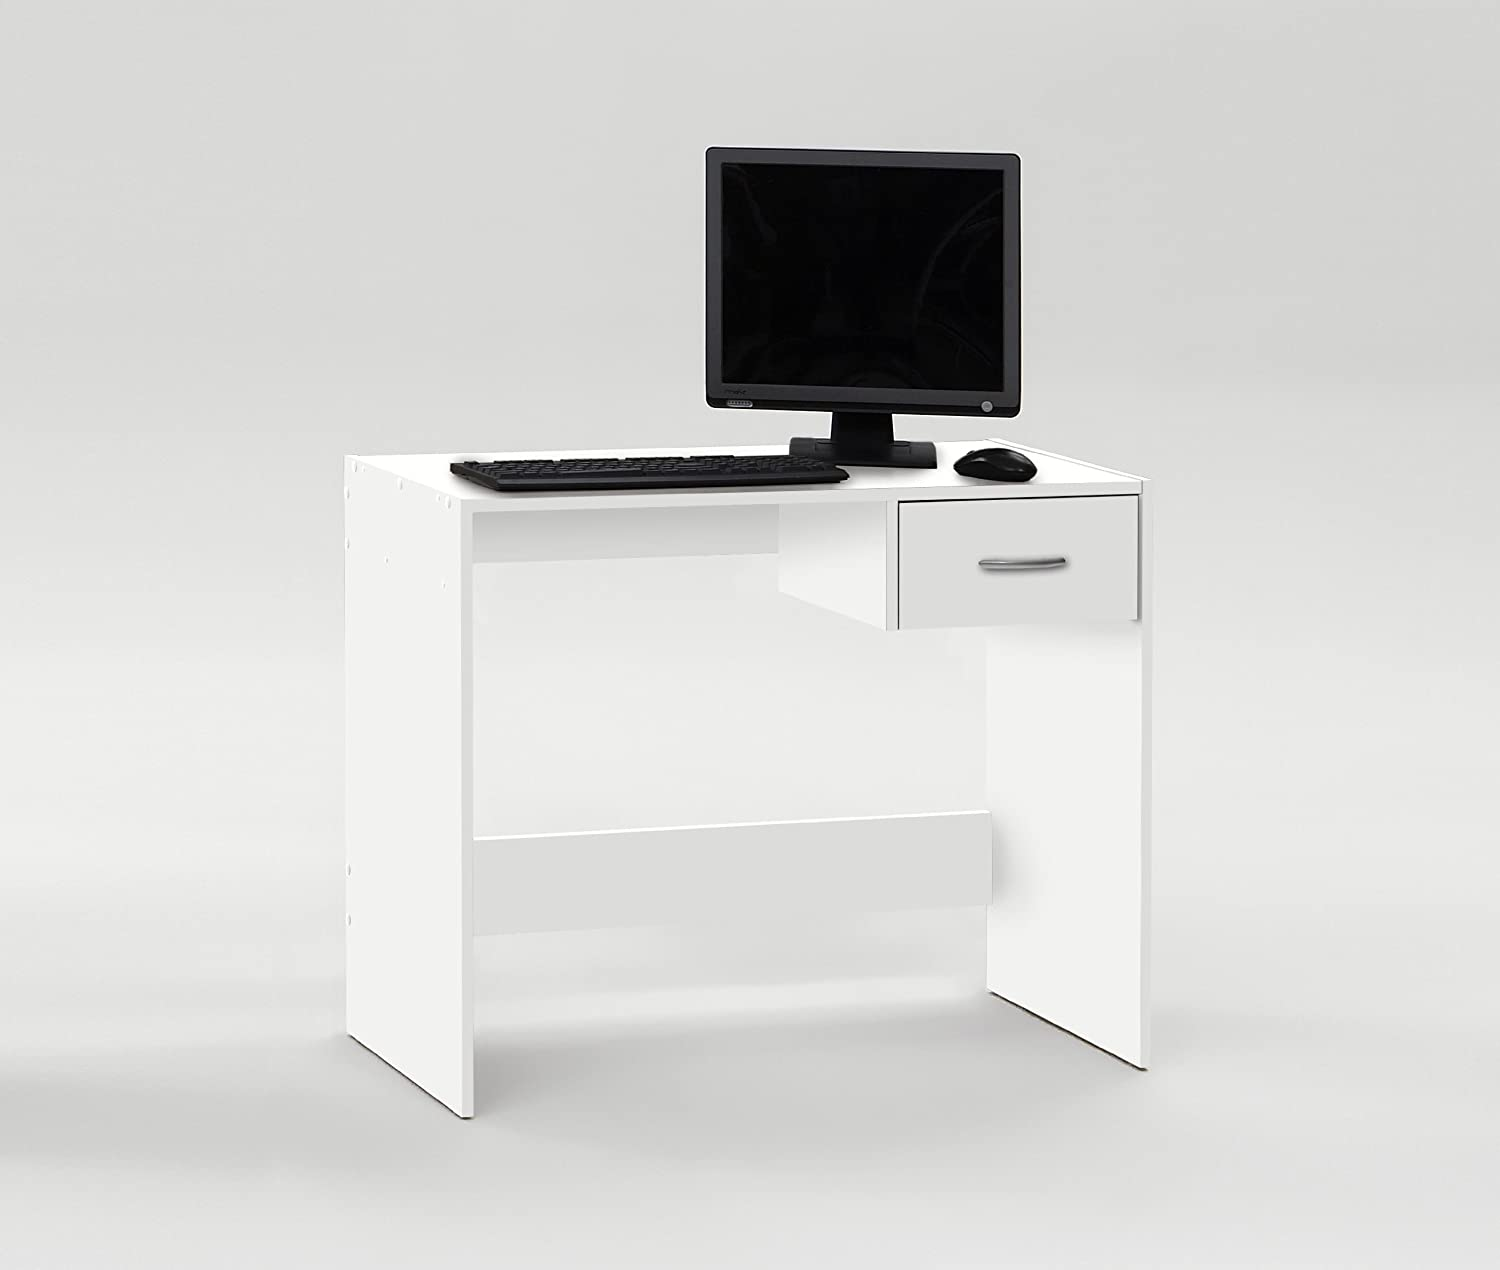 PAUL White Finish Office Computer Desk Workstation Study Table Amazoncouk Kitchen Home